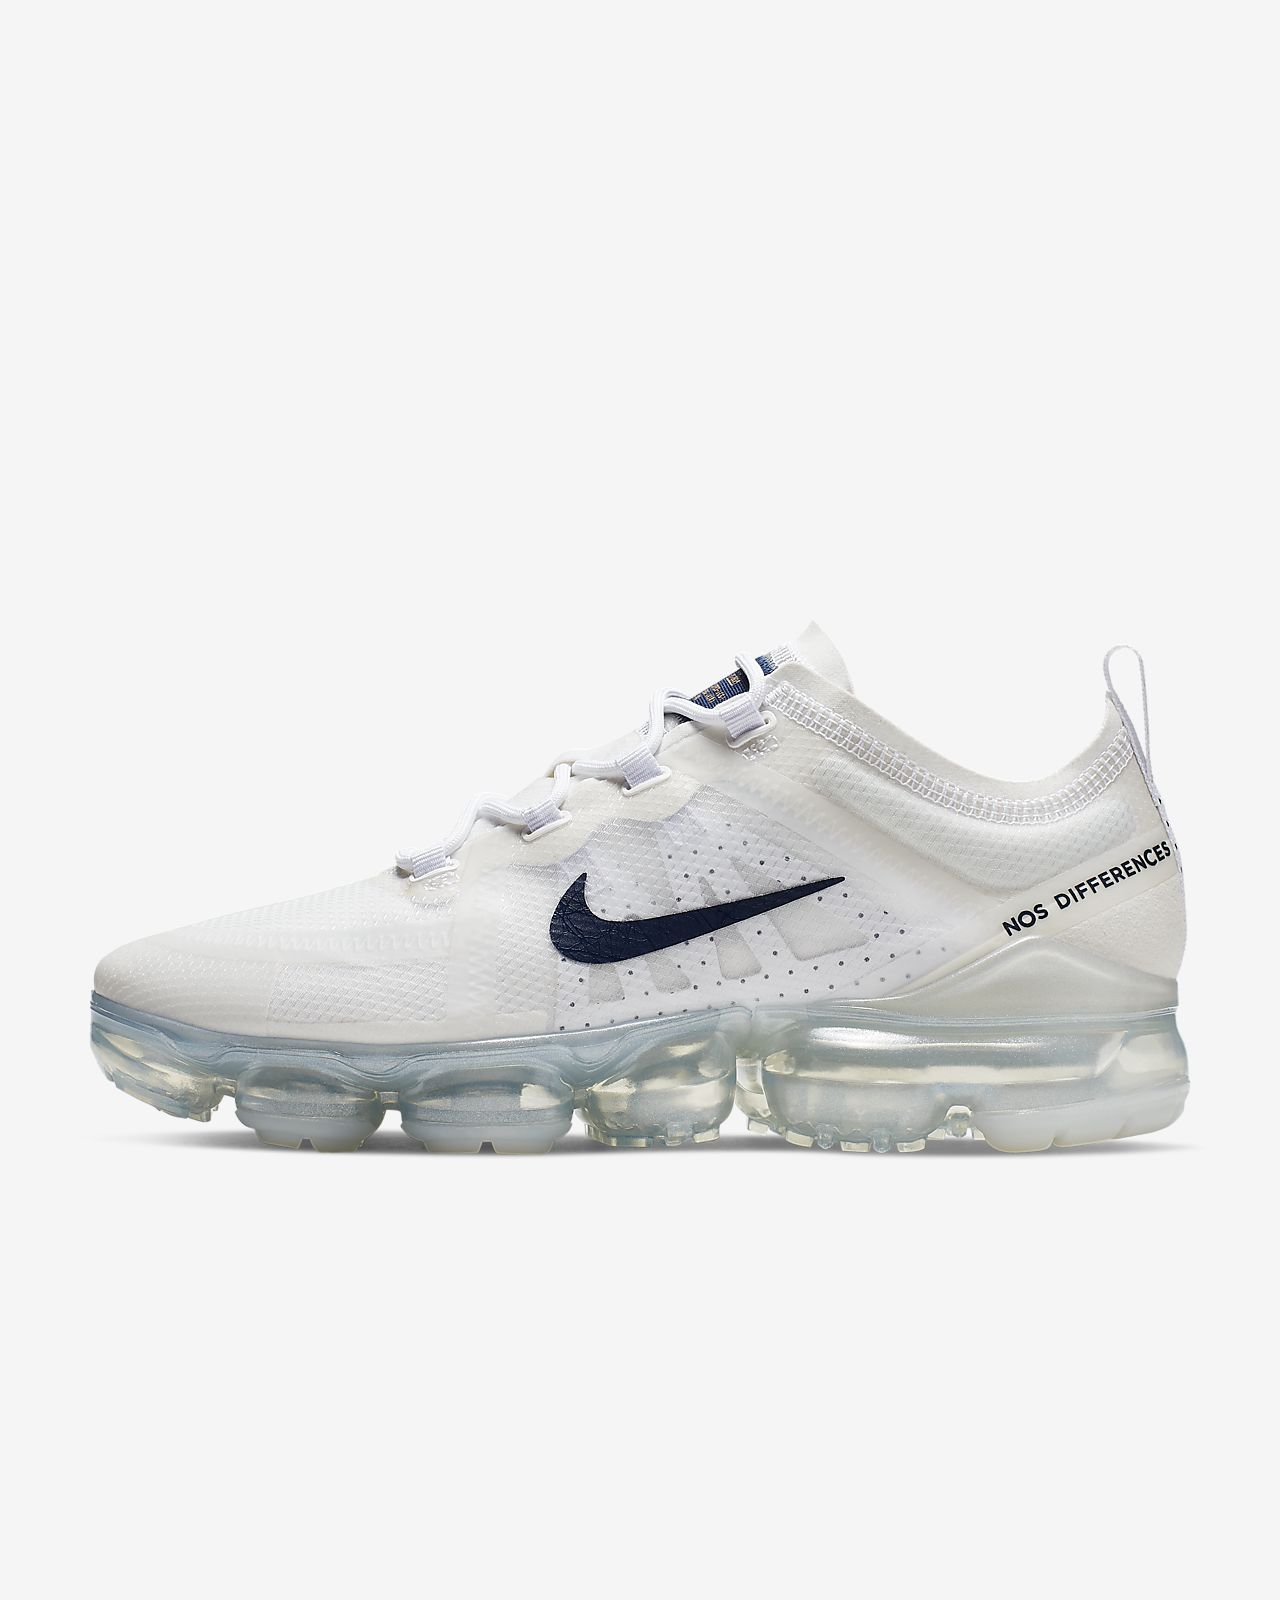 chaussures nikes femmes 2019